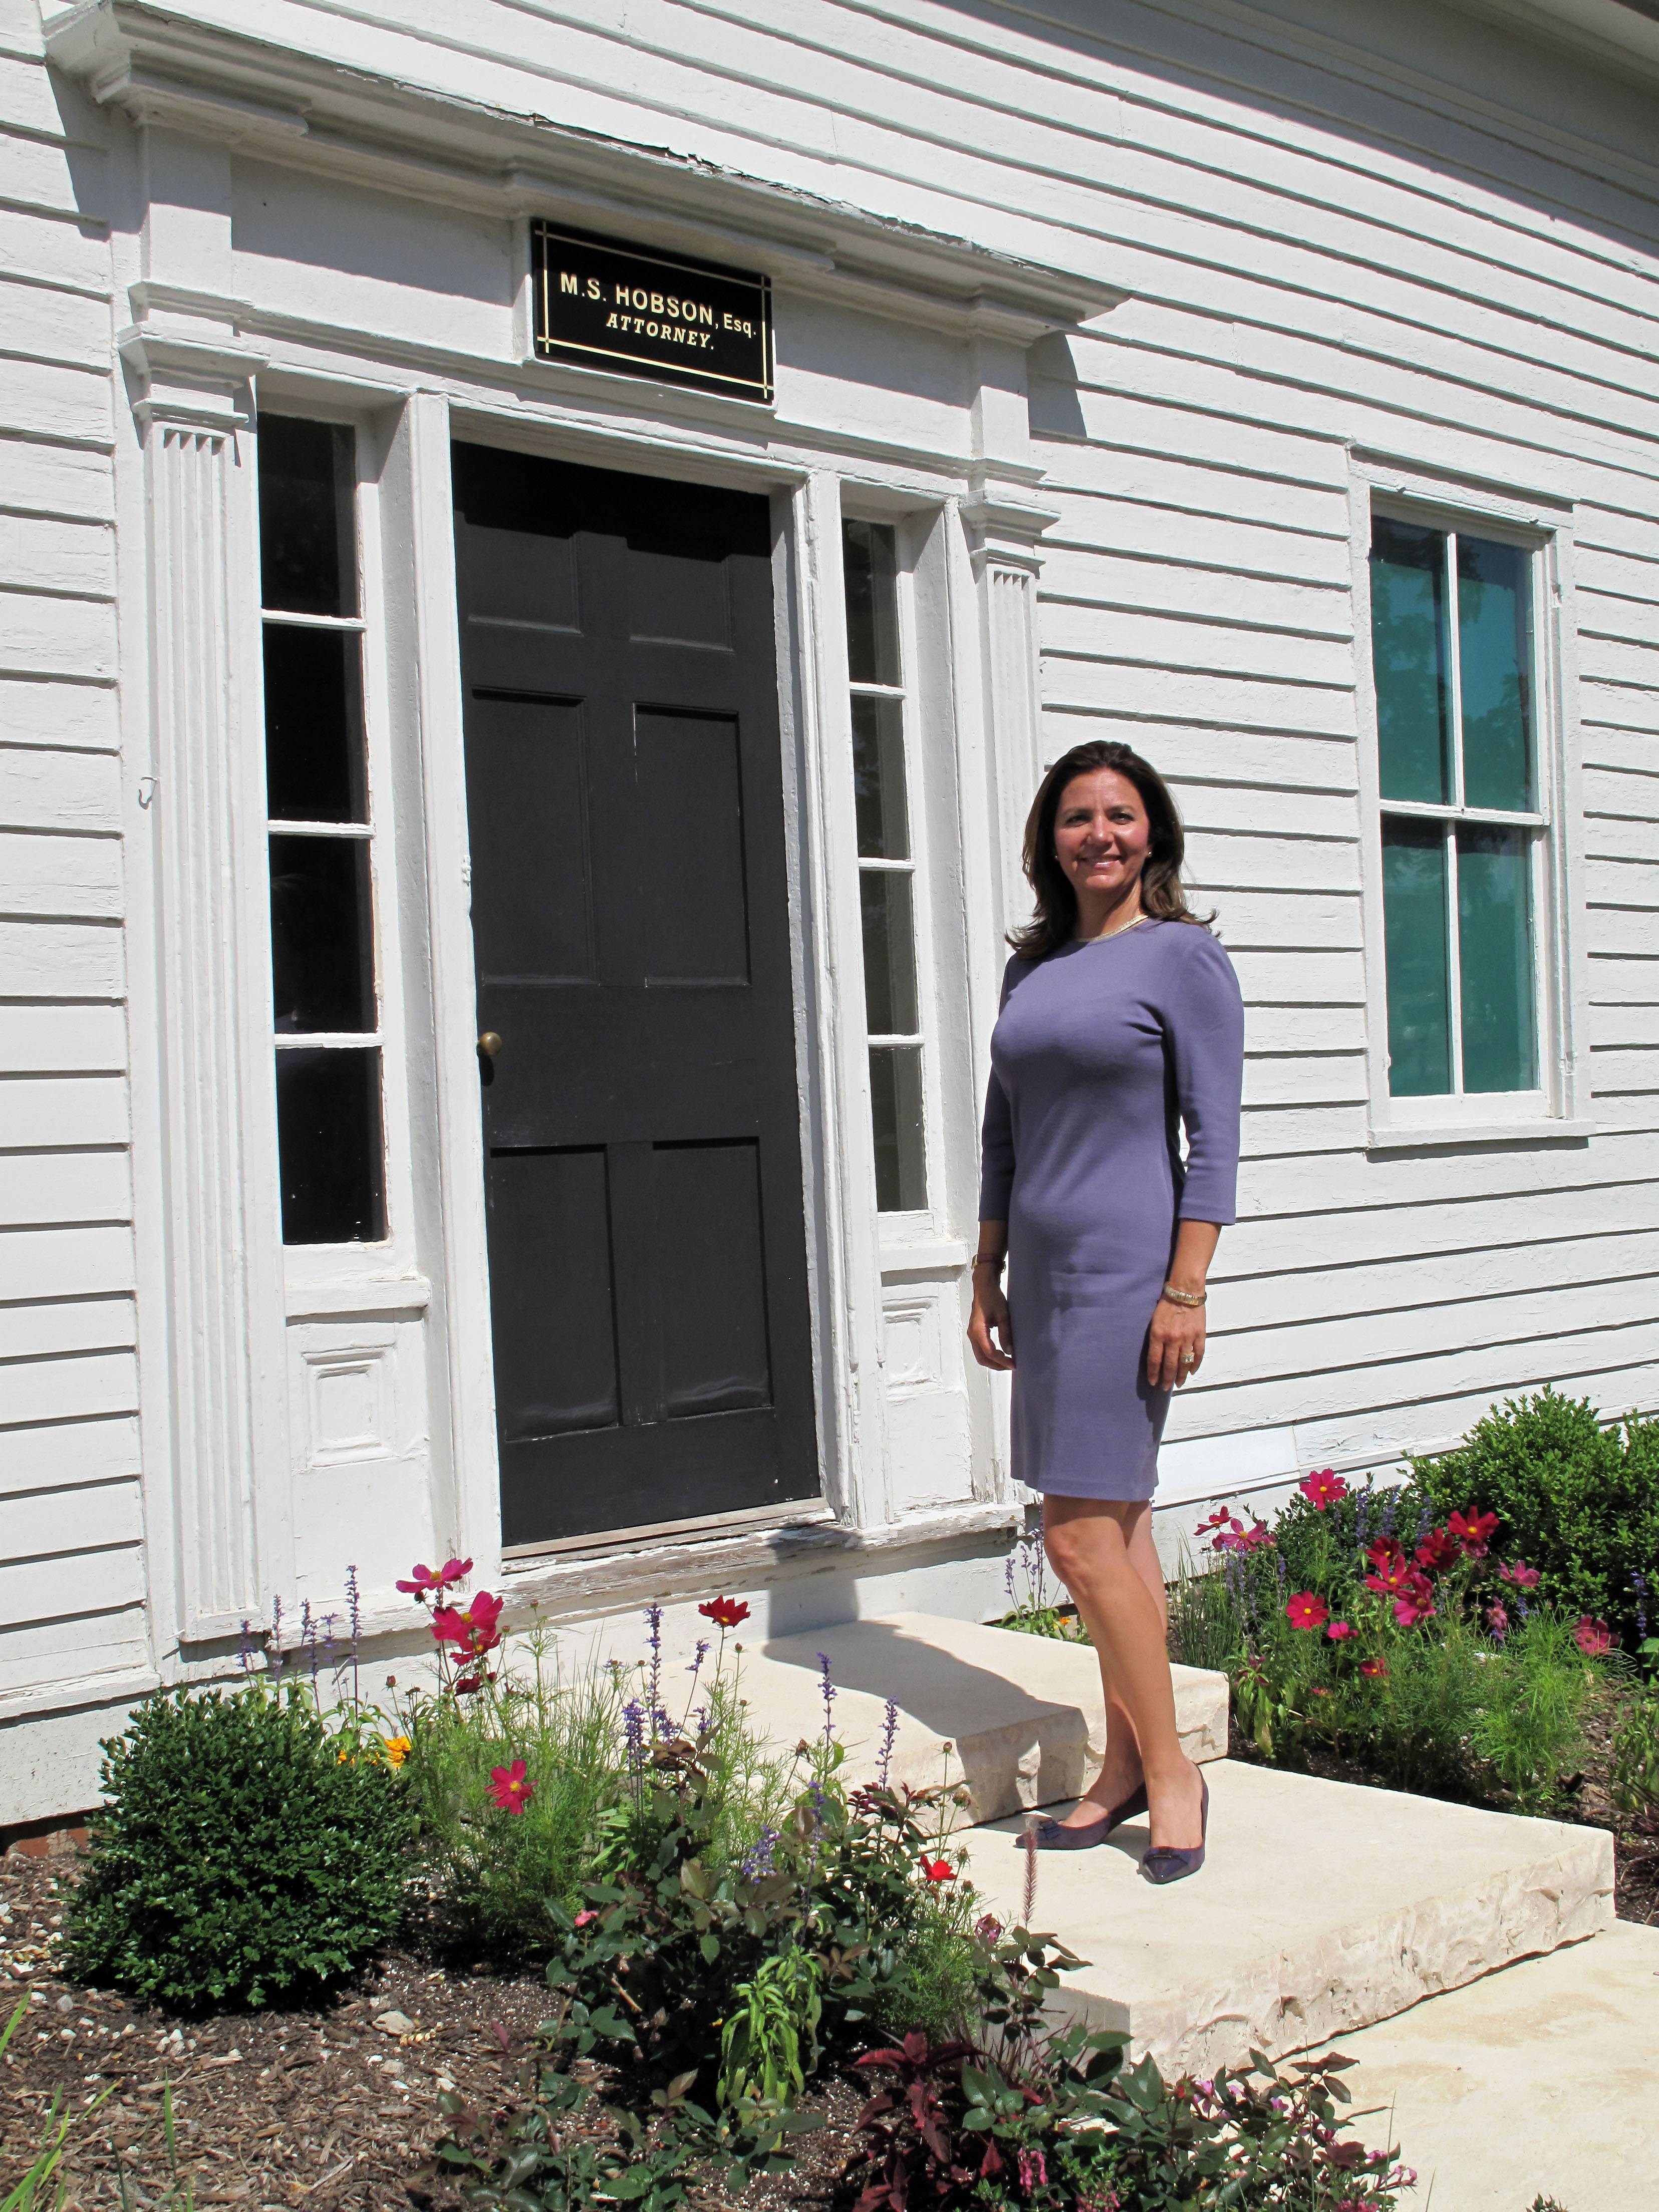 New leader to 'build on the vision' of Naper Settlement